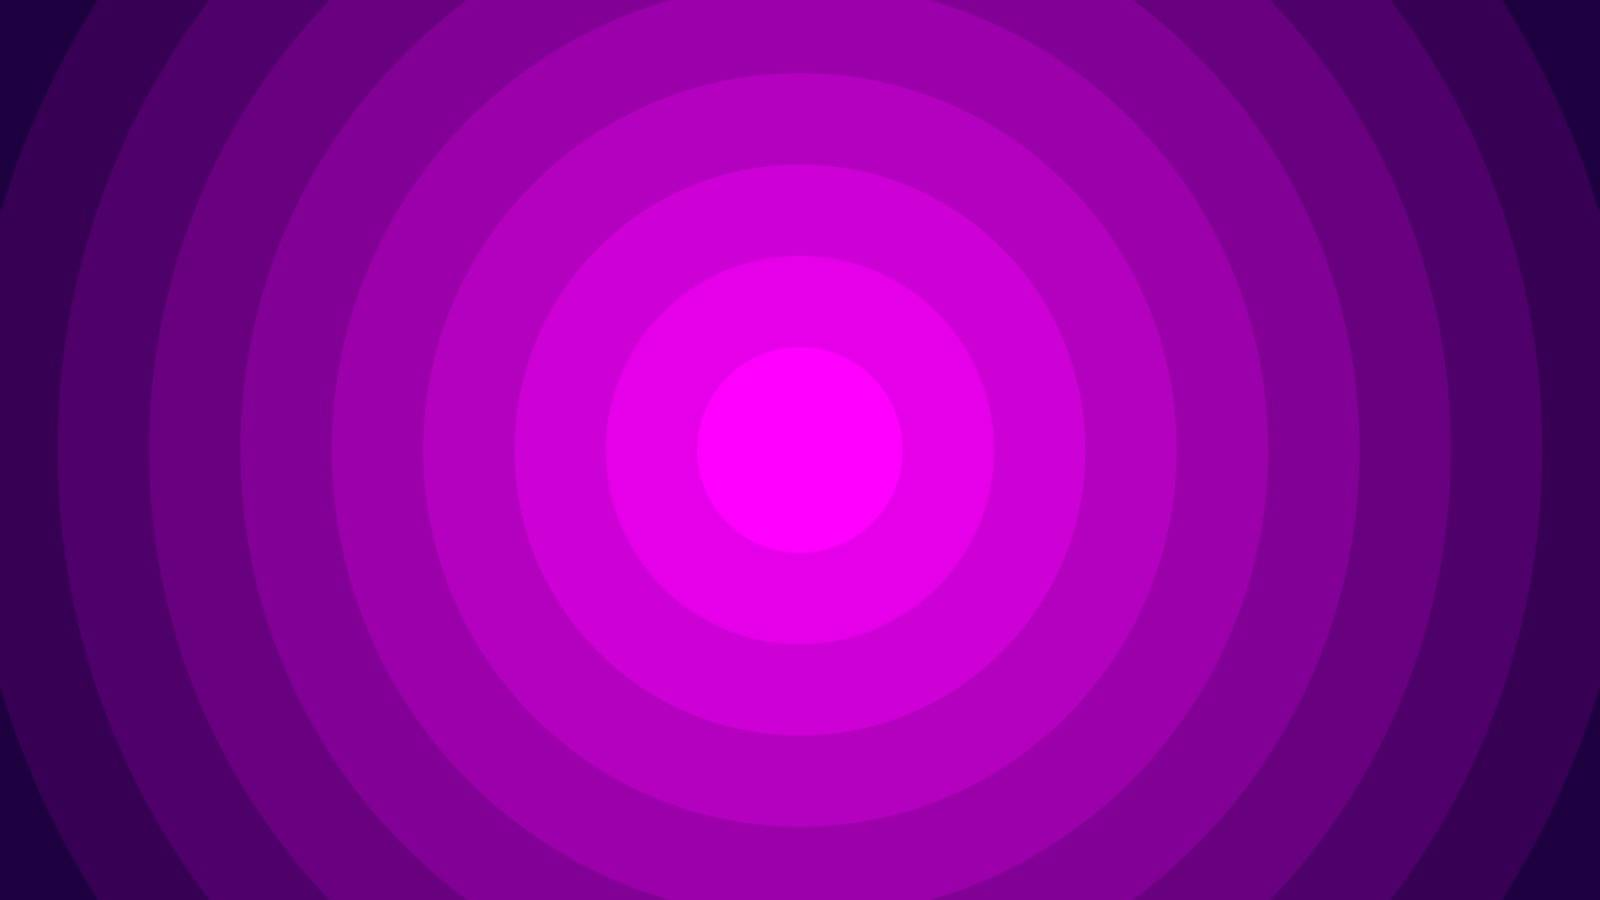 Light to dark purple vector layout with circles. Geometric abstract illustration for website, poster, banner ads.